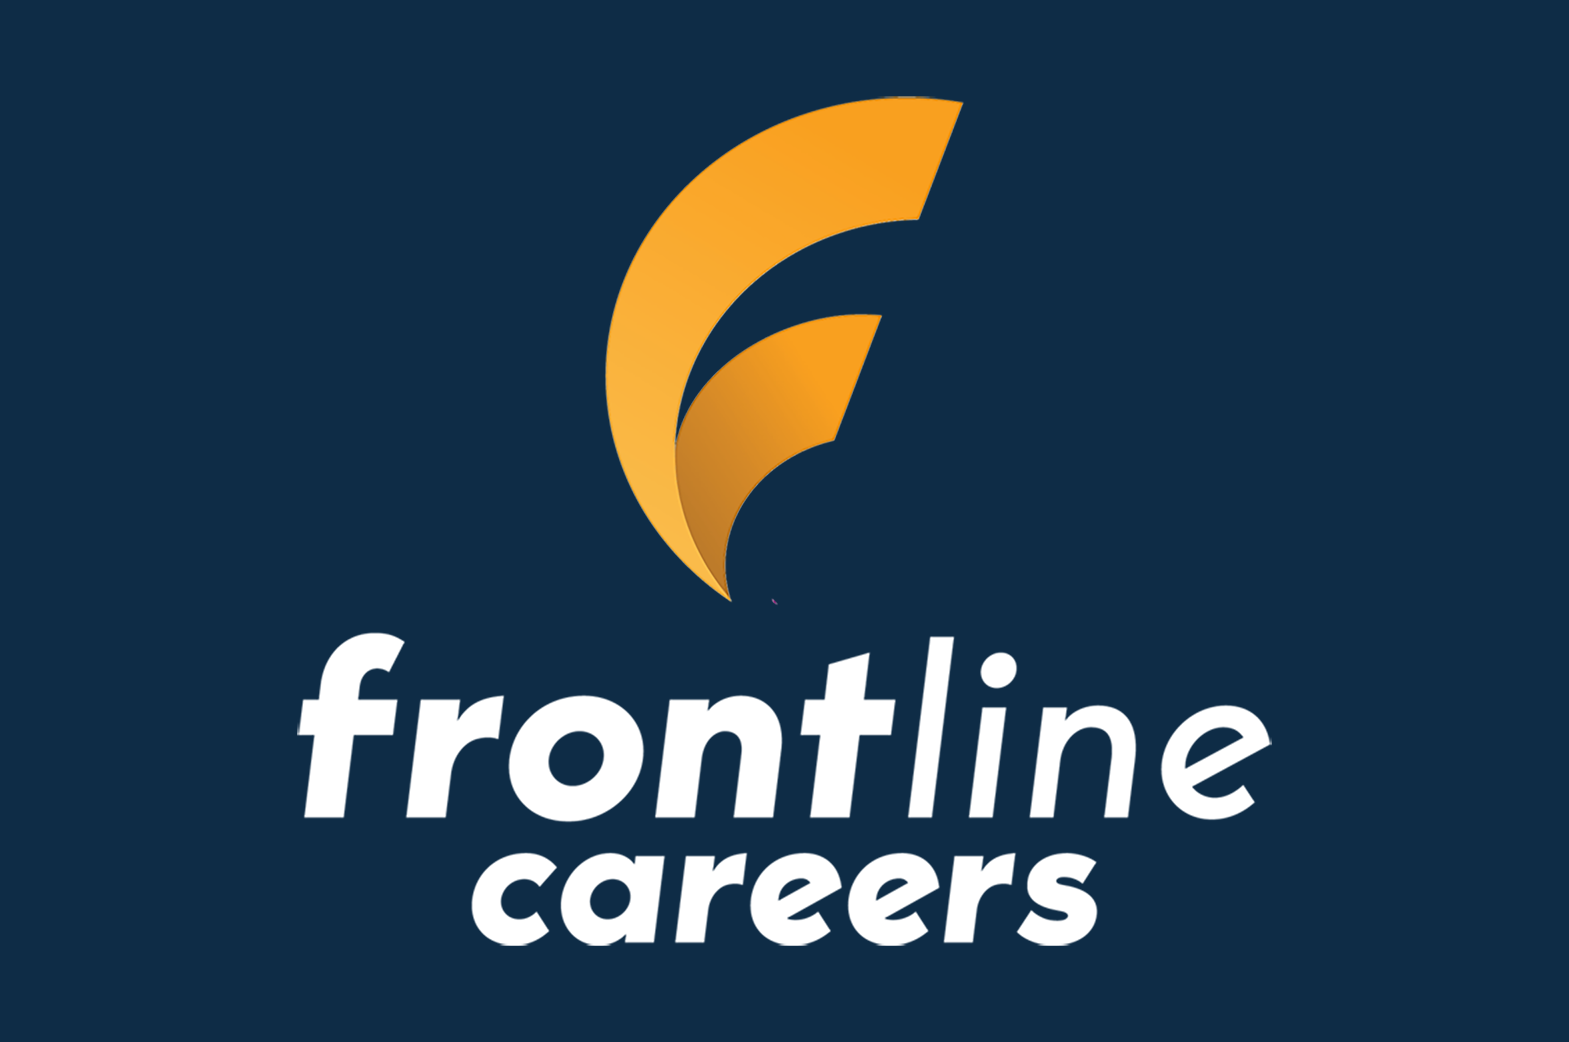 Who is Frontline Careers